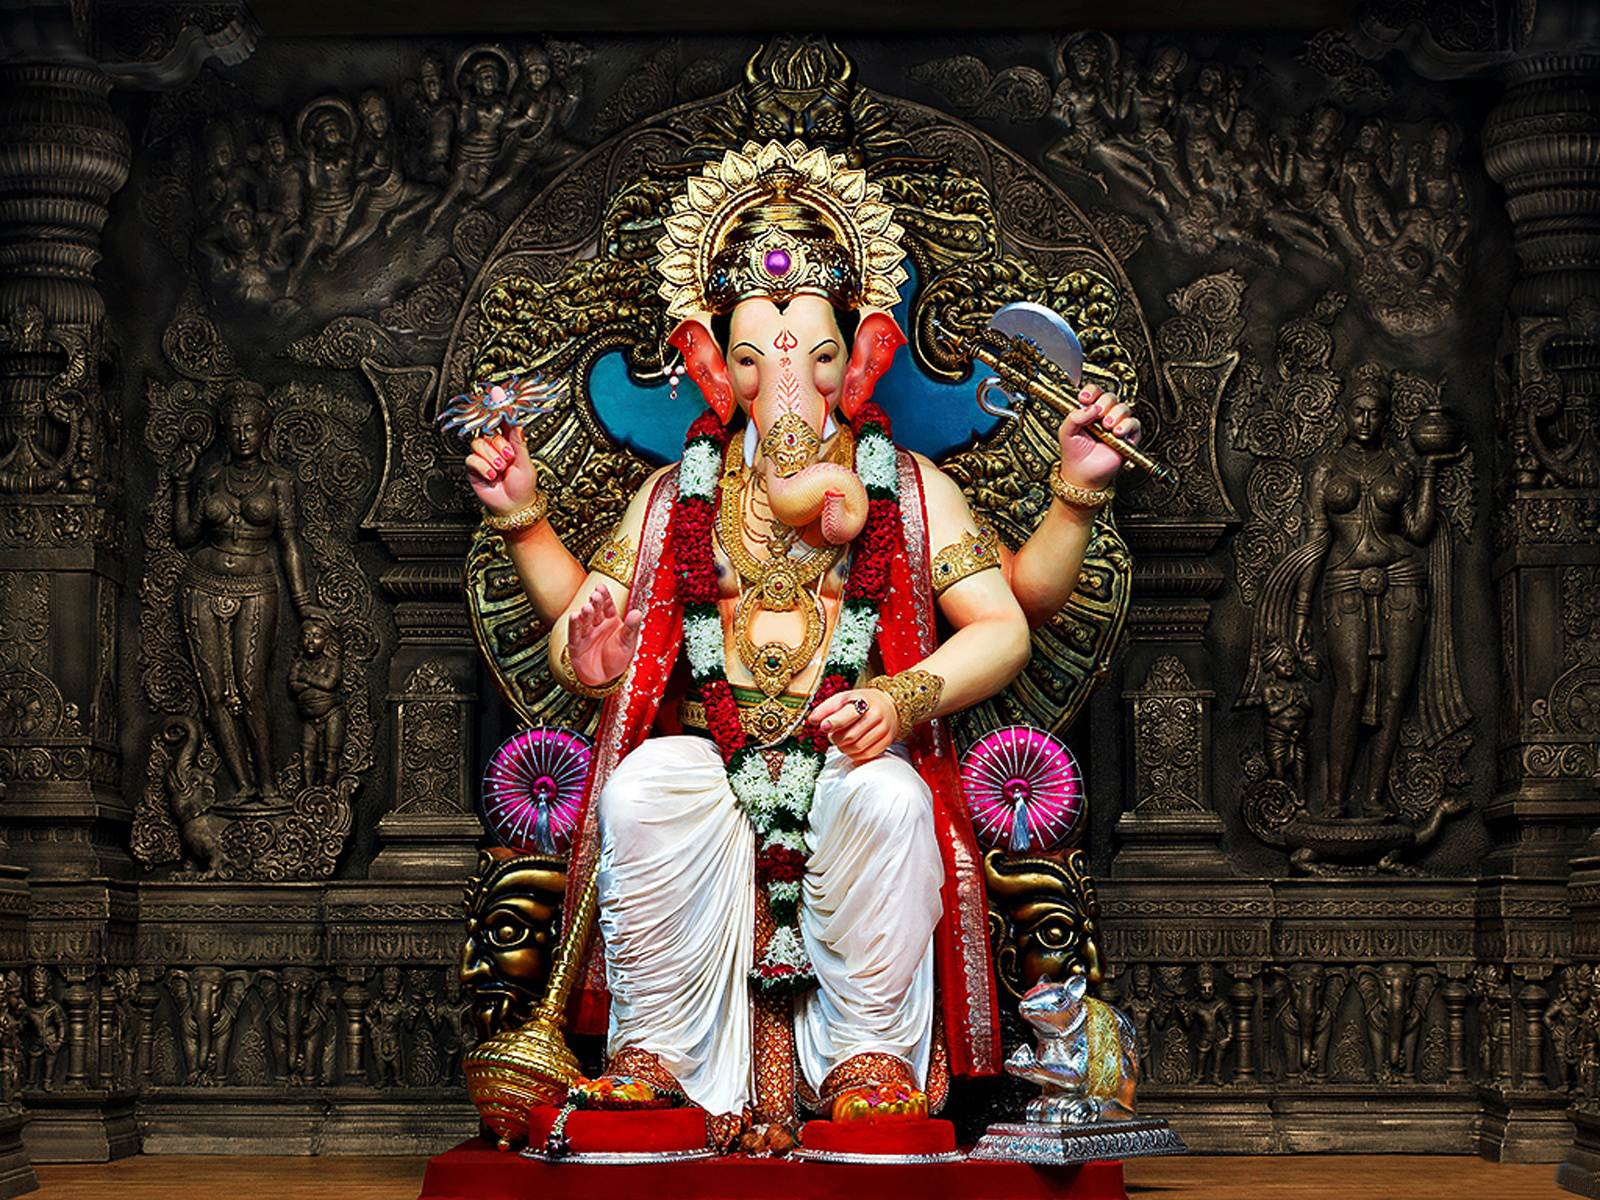 Hd wallpaper ganesh - Wallpaper Happy Ganesh Hd Wallpapers Backgrounds Happy Ganesh